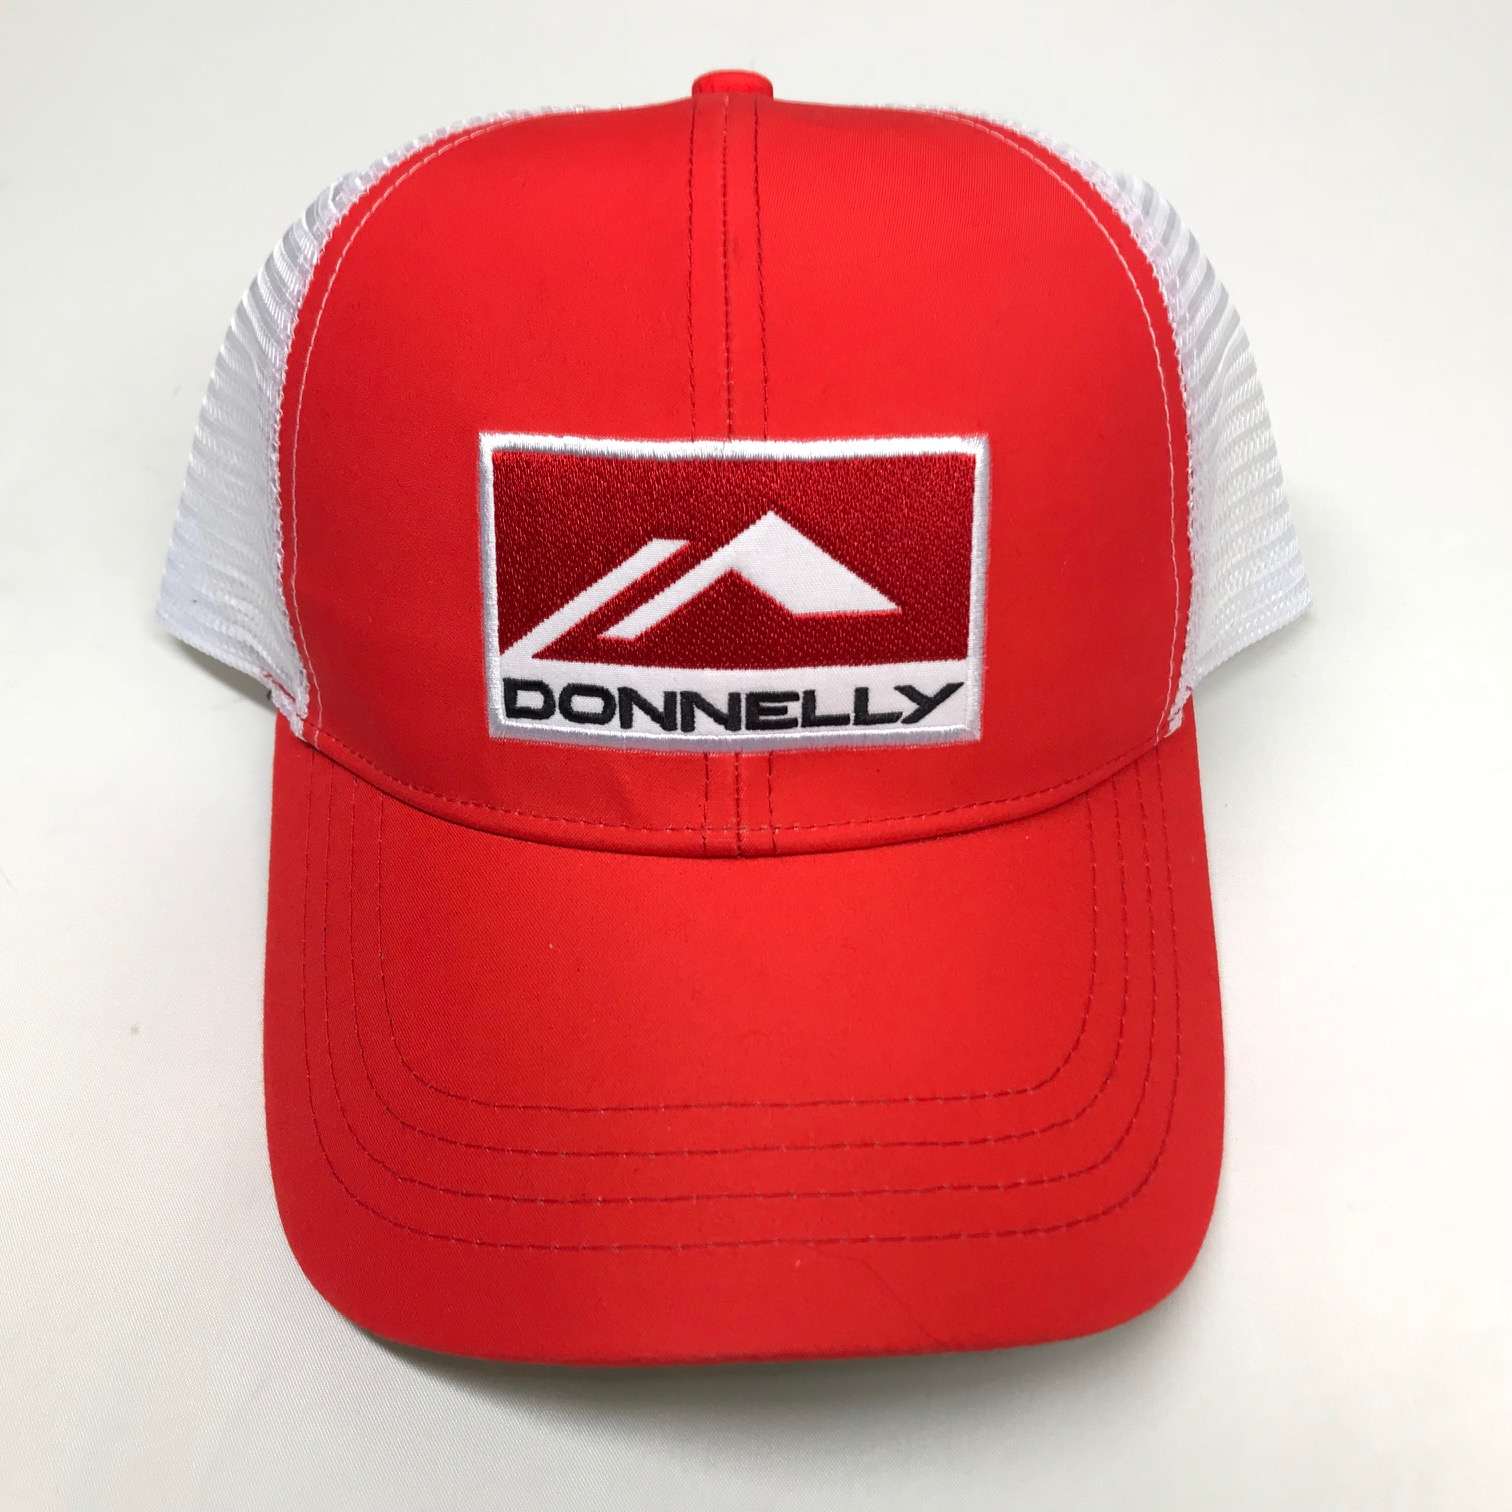 Donnelly Trucker Hat, Curved Bill, Red